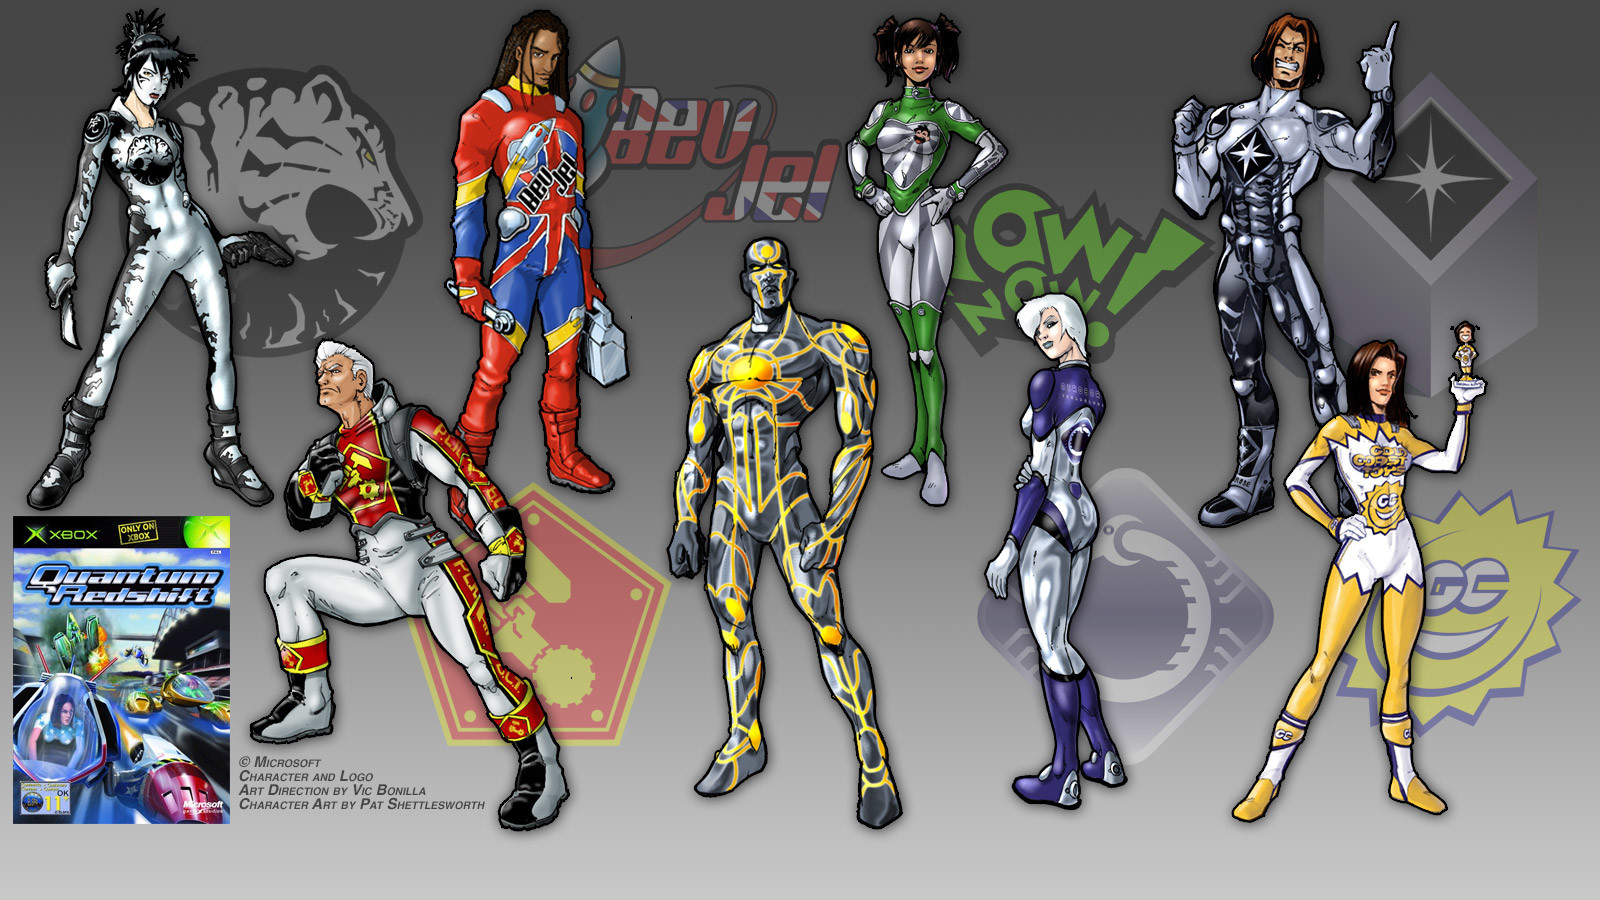 Art Directed the characters for the Xbox title Quantum Redshift